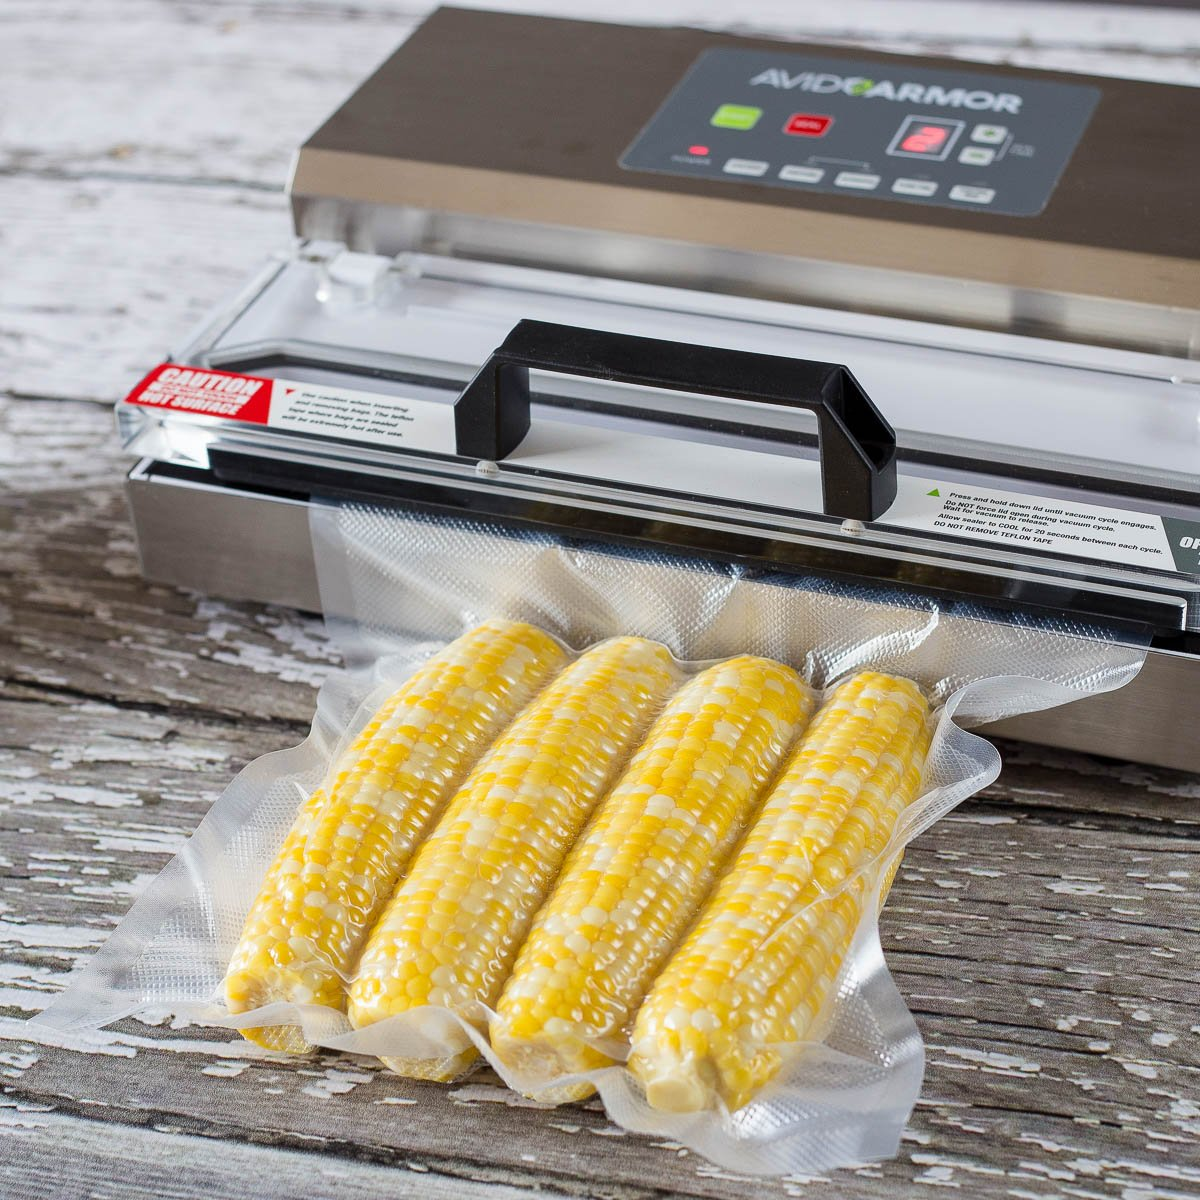 Avid Armor Vacuum Sealer Machine - A100 Stainless Construction, Clear Lid, Commercial Double Piston Pump Heavy Duty 12'' Wide Seal Bar Built in Cooling Fan Includes 30 Pre-cut Bags and Accessory Hose by Avid Armor (Image #7)